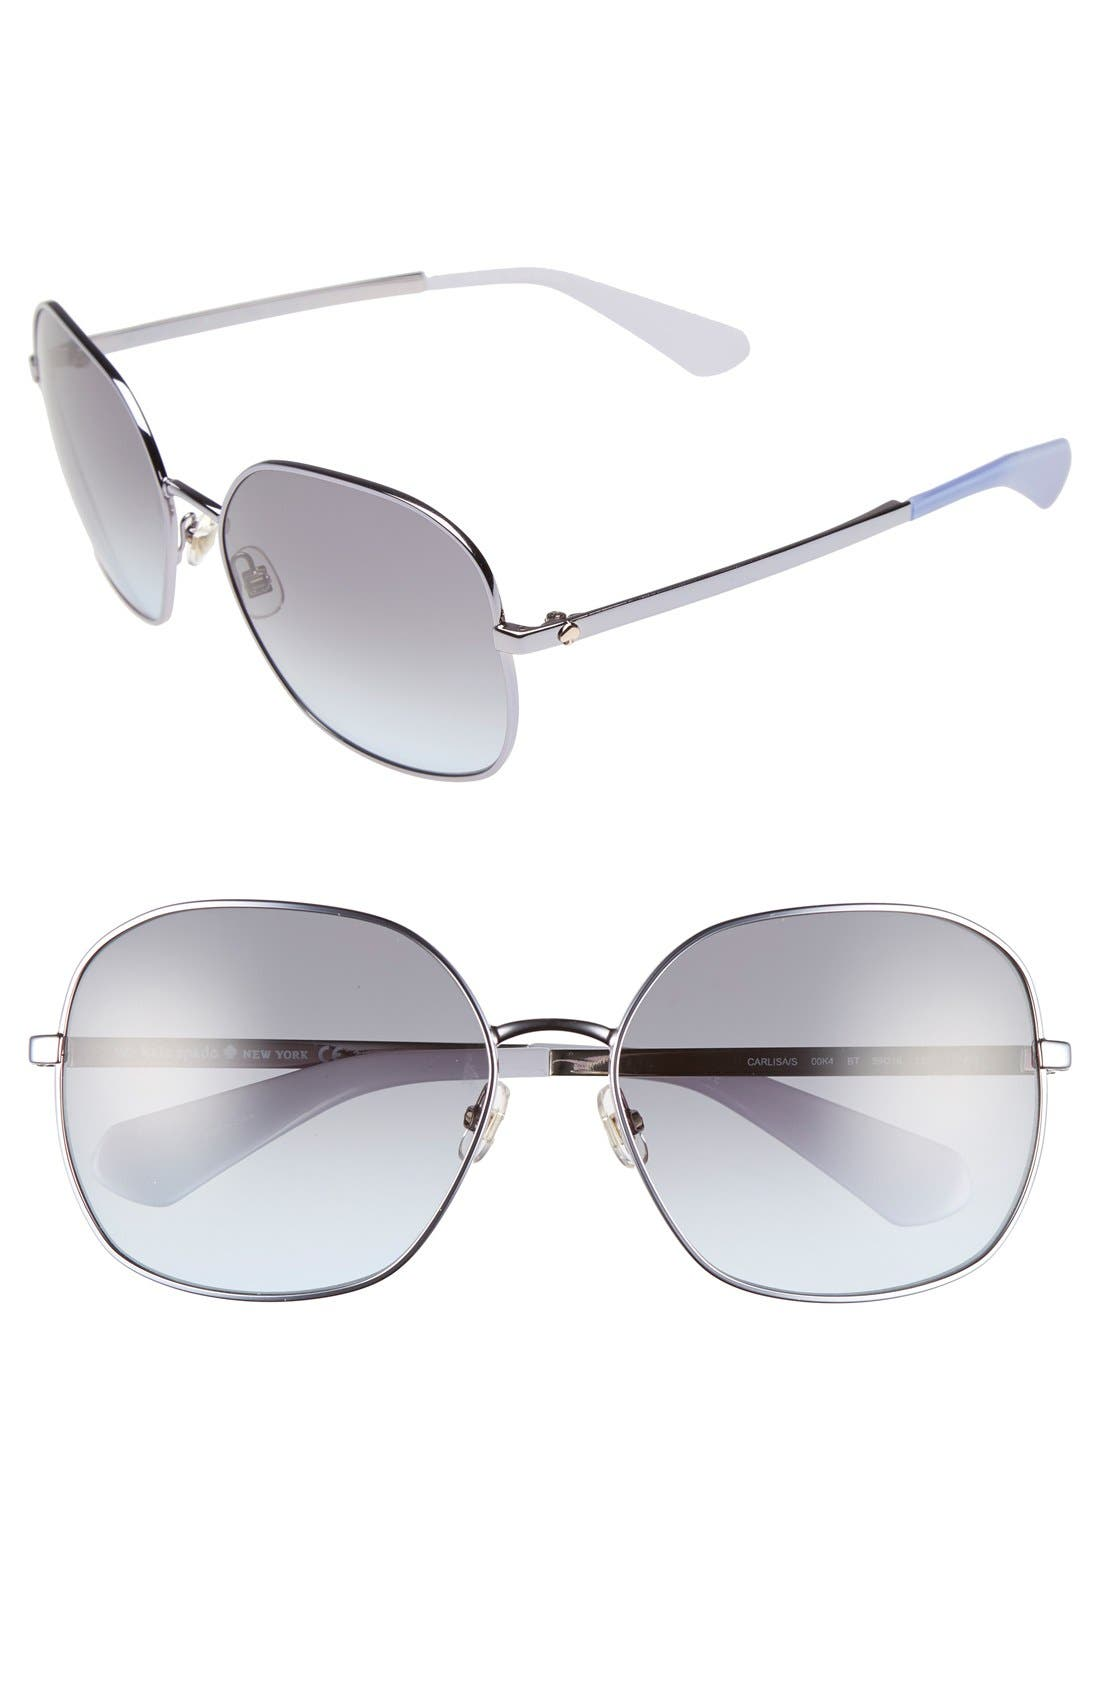 KATE SPADE NEW YORK carlisa 59mm sunglasses